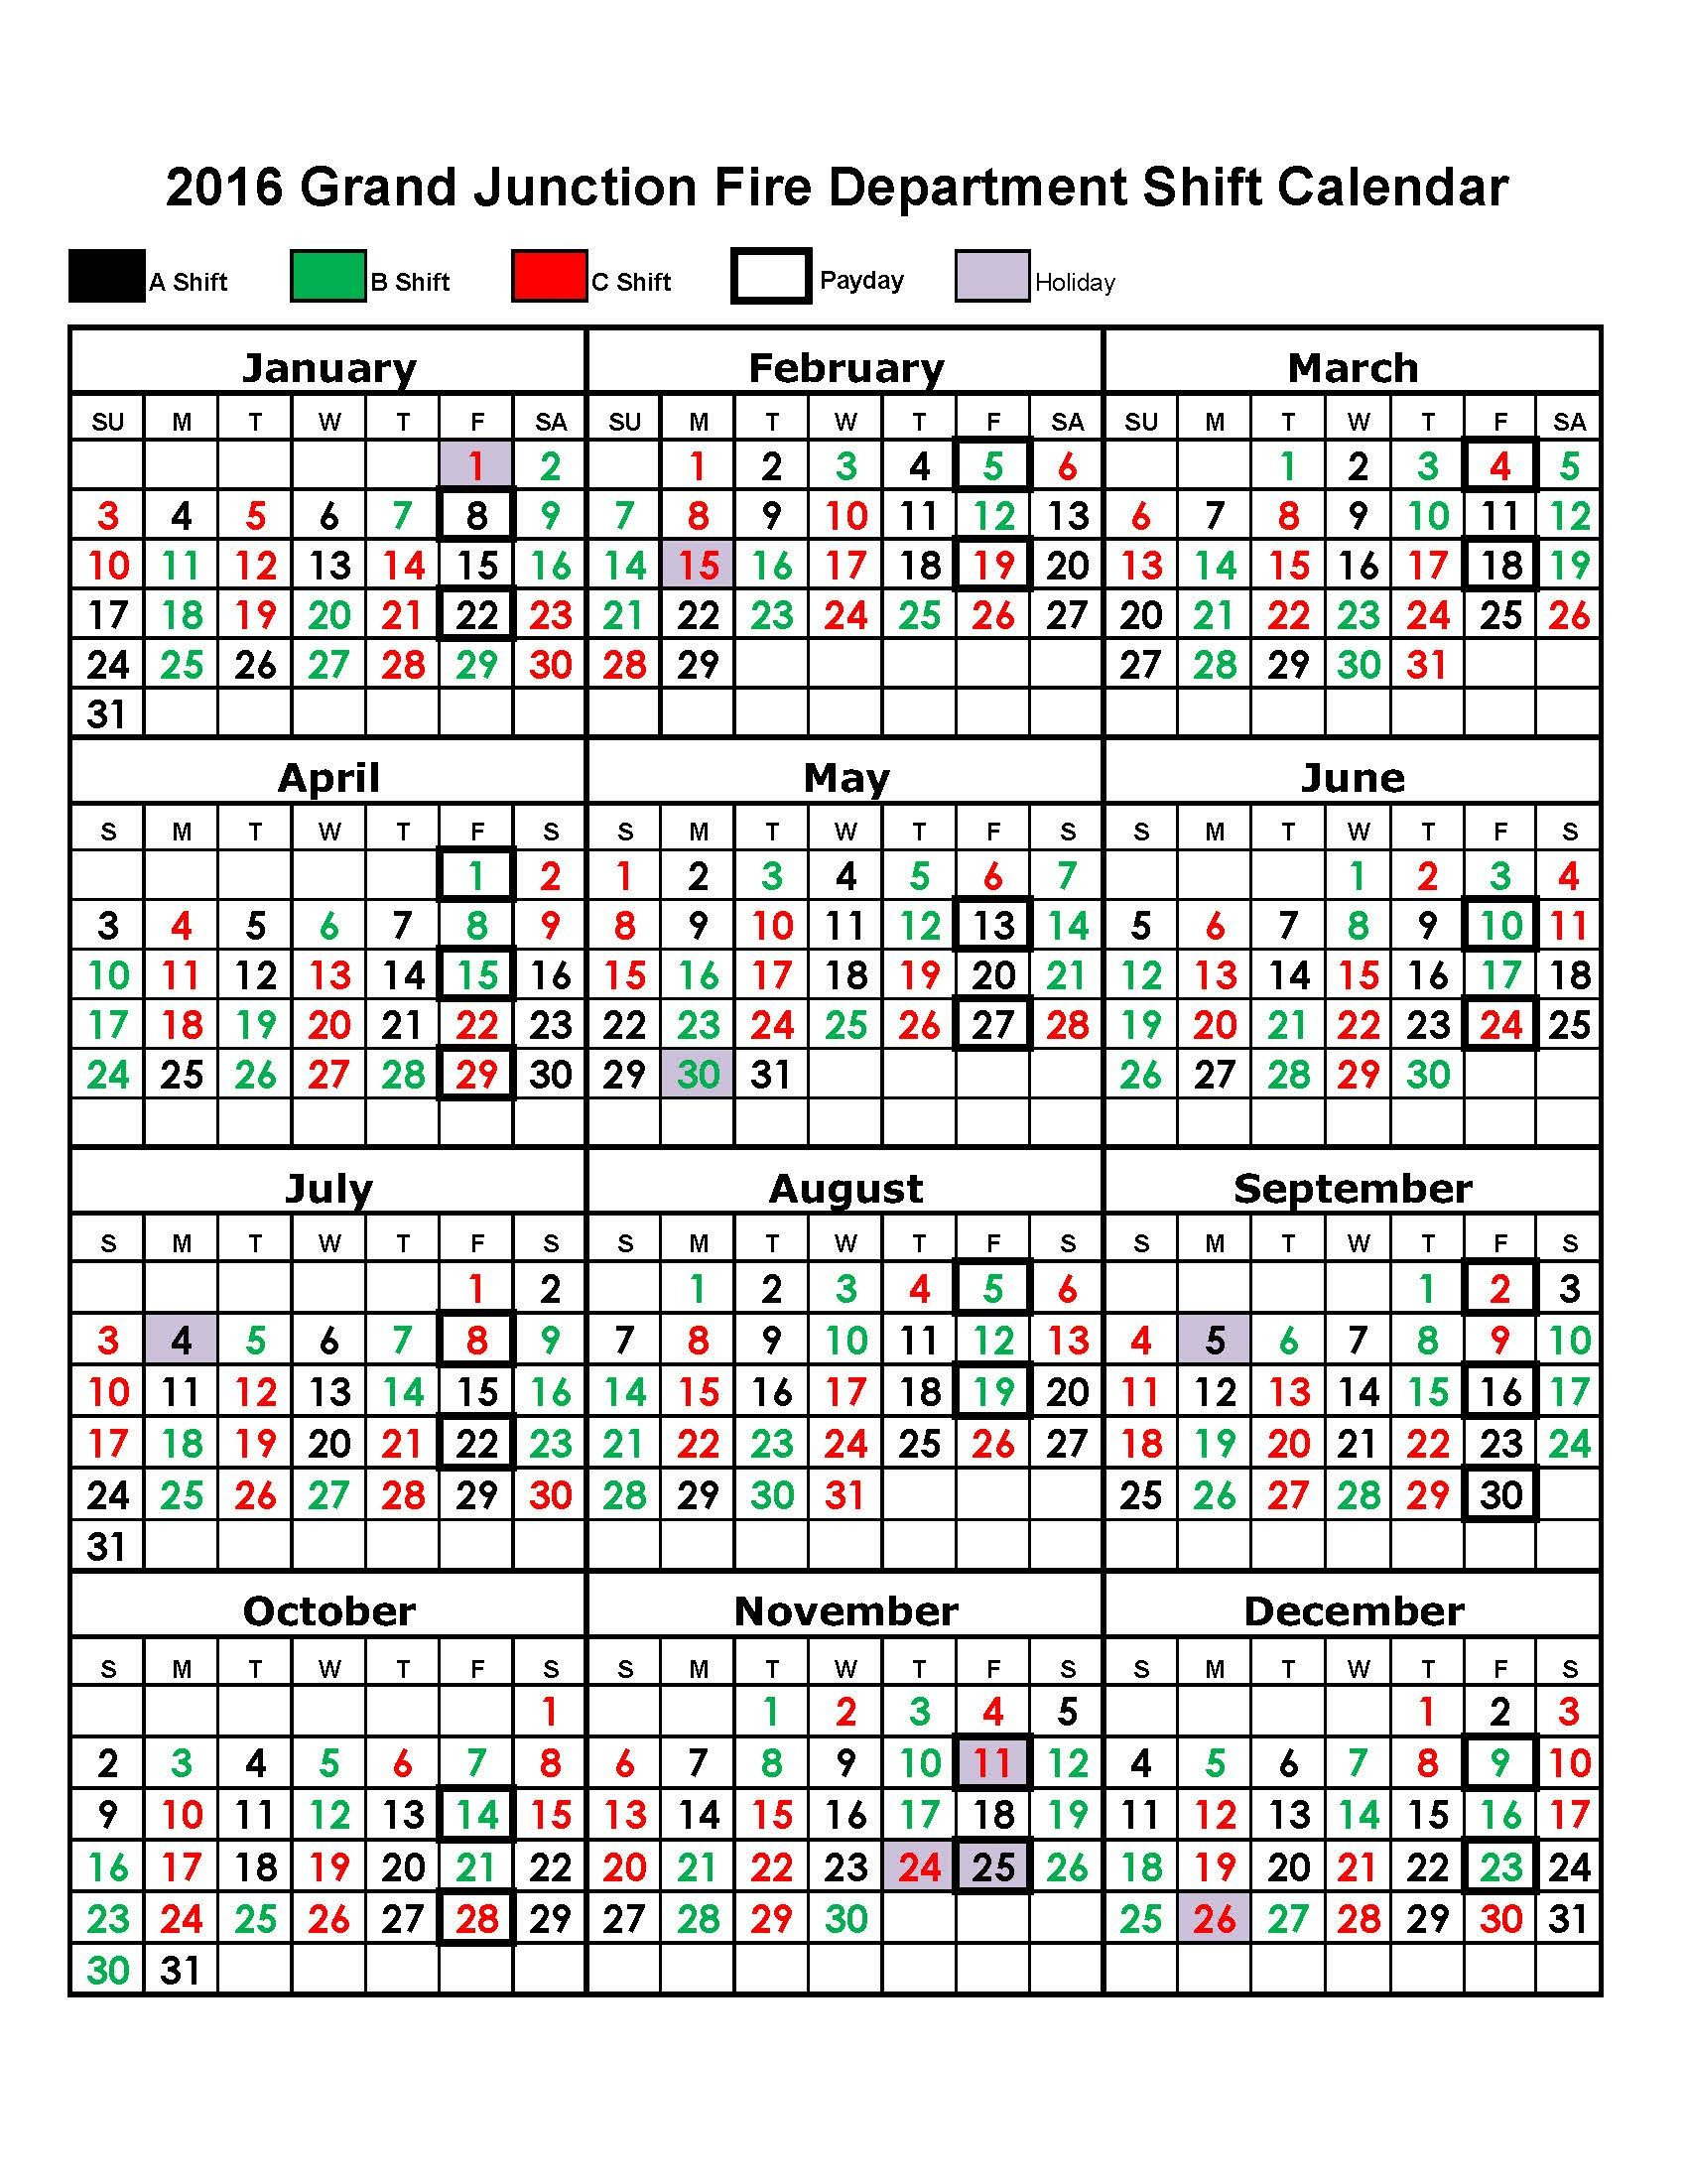 Firefighter Shift Calendar Template | Example Calendar Printable